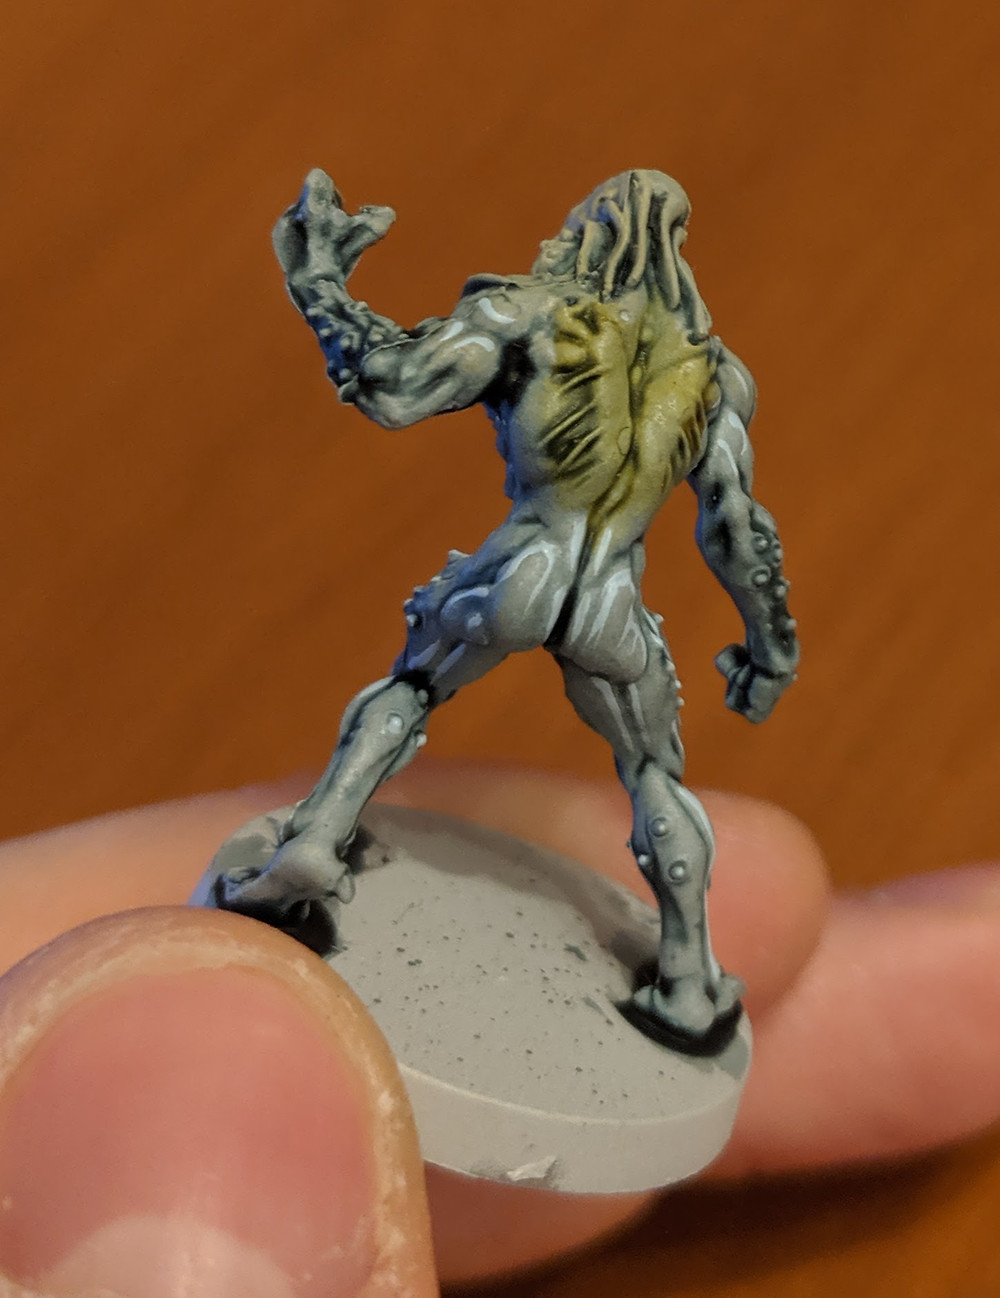 Zombicide Invader - Worker Xeno - Frostbite